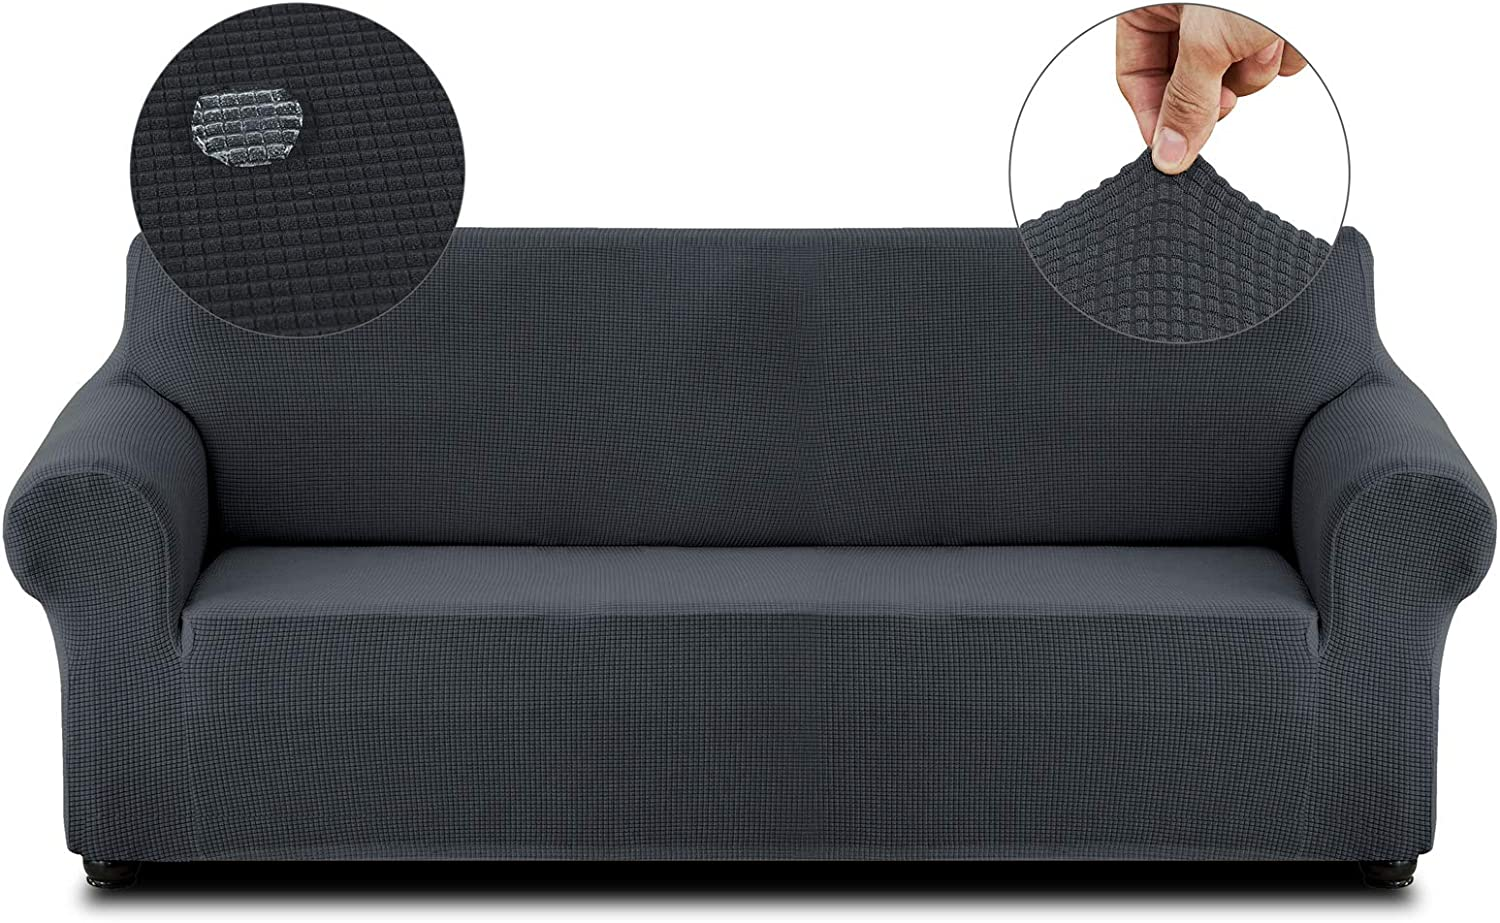 Cristgee Super Stretch Sofa Slipcover, Water Repellent Couch Cover with Elastic Bottom, Washable Anti-Slip Furniture Cover Protector with Non-Skid Foam for Kids, Pets (Sofa, Dark Gray)